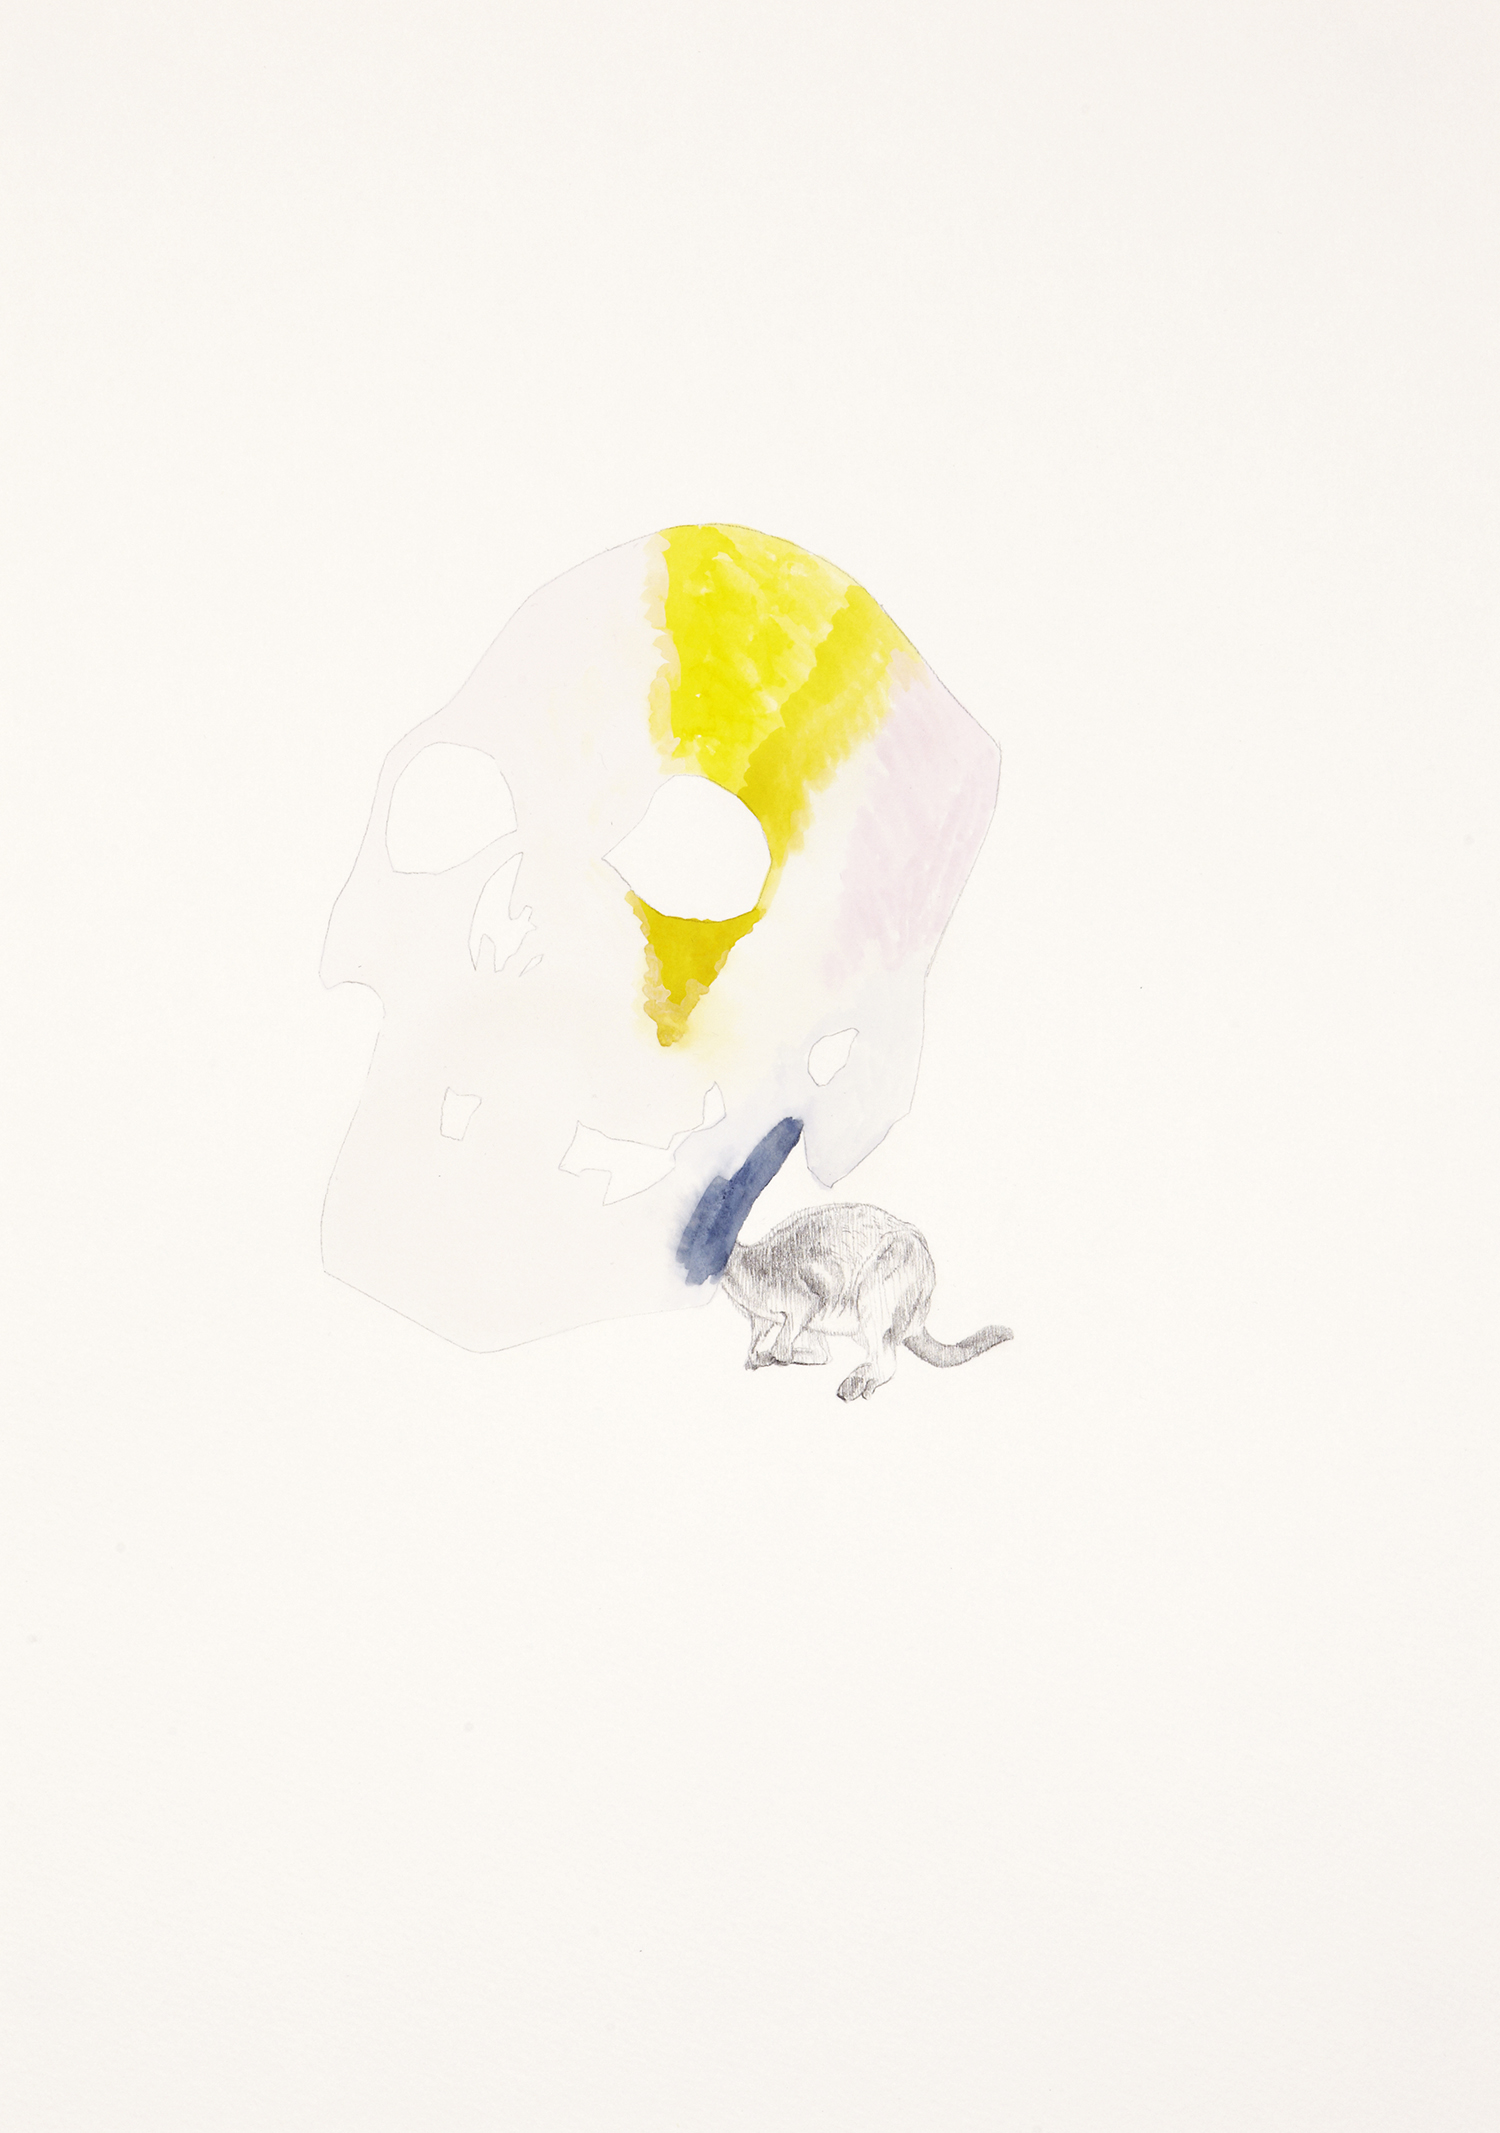 Skull Centric Behaviour #16, 2011, Watercolour and pencil on paper, 42.0 x 29.7 cm, Photo: Sam Scoufos